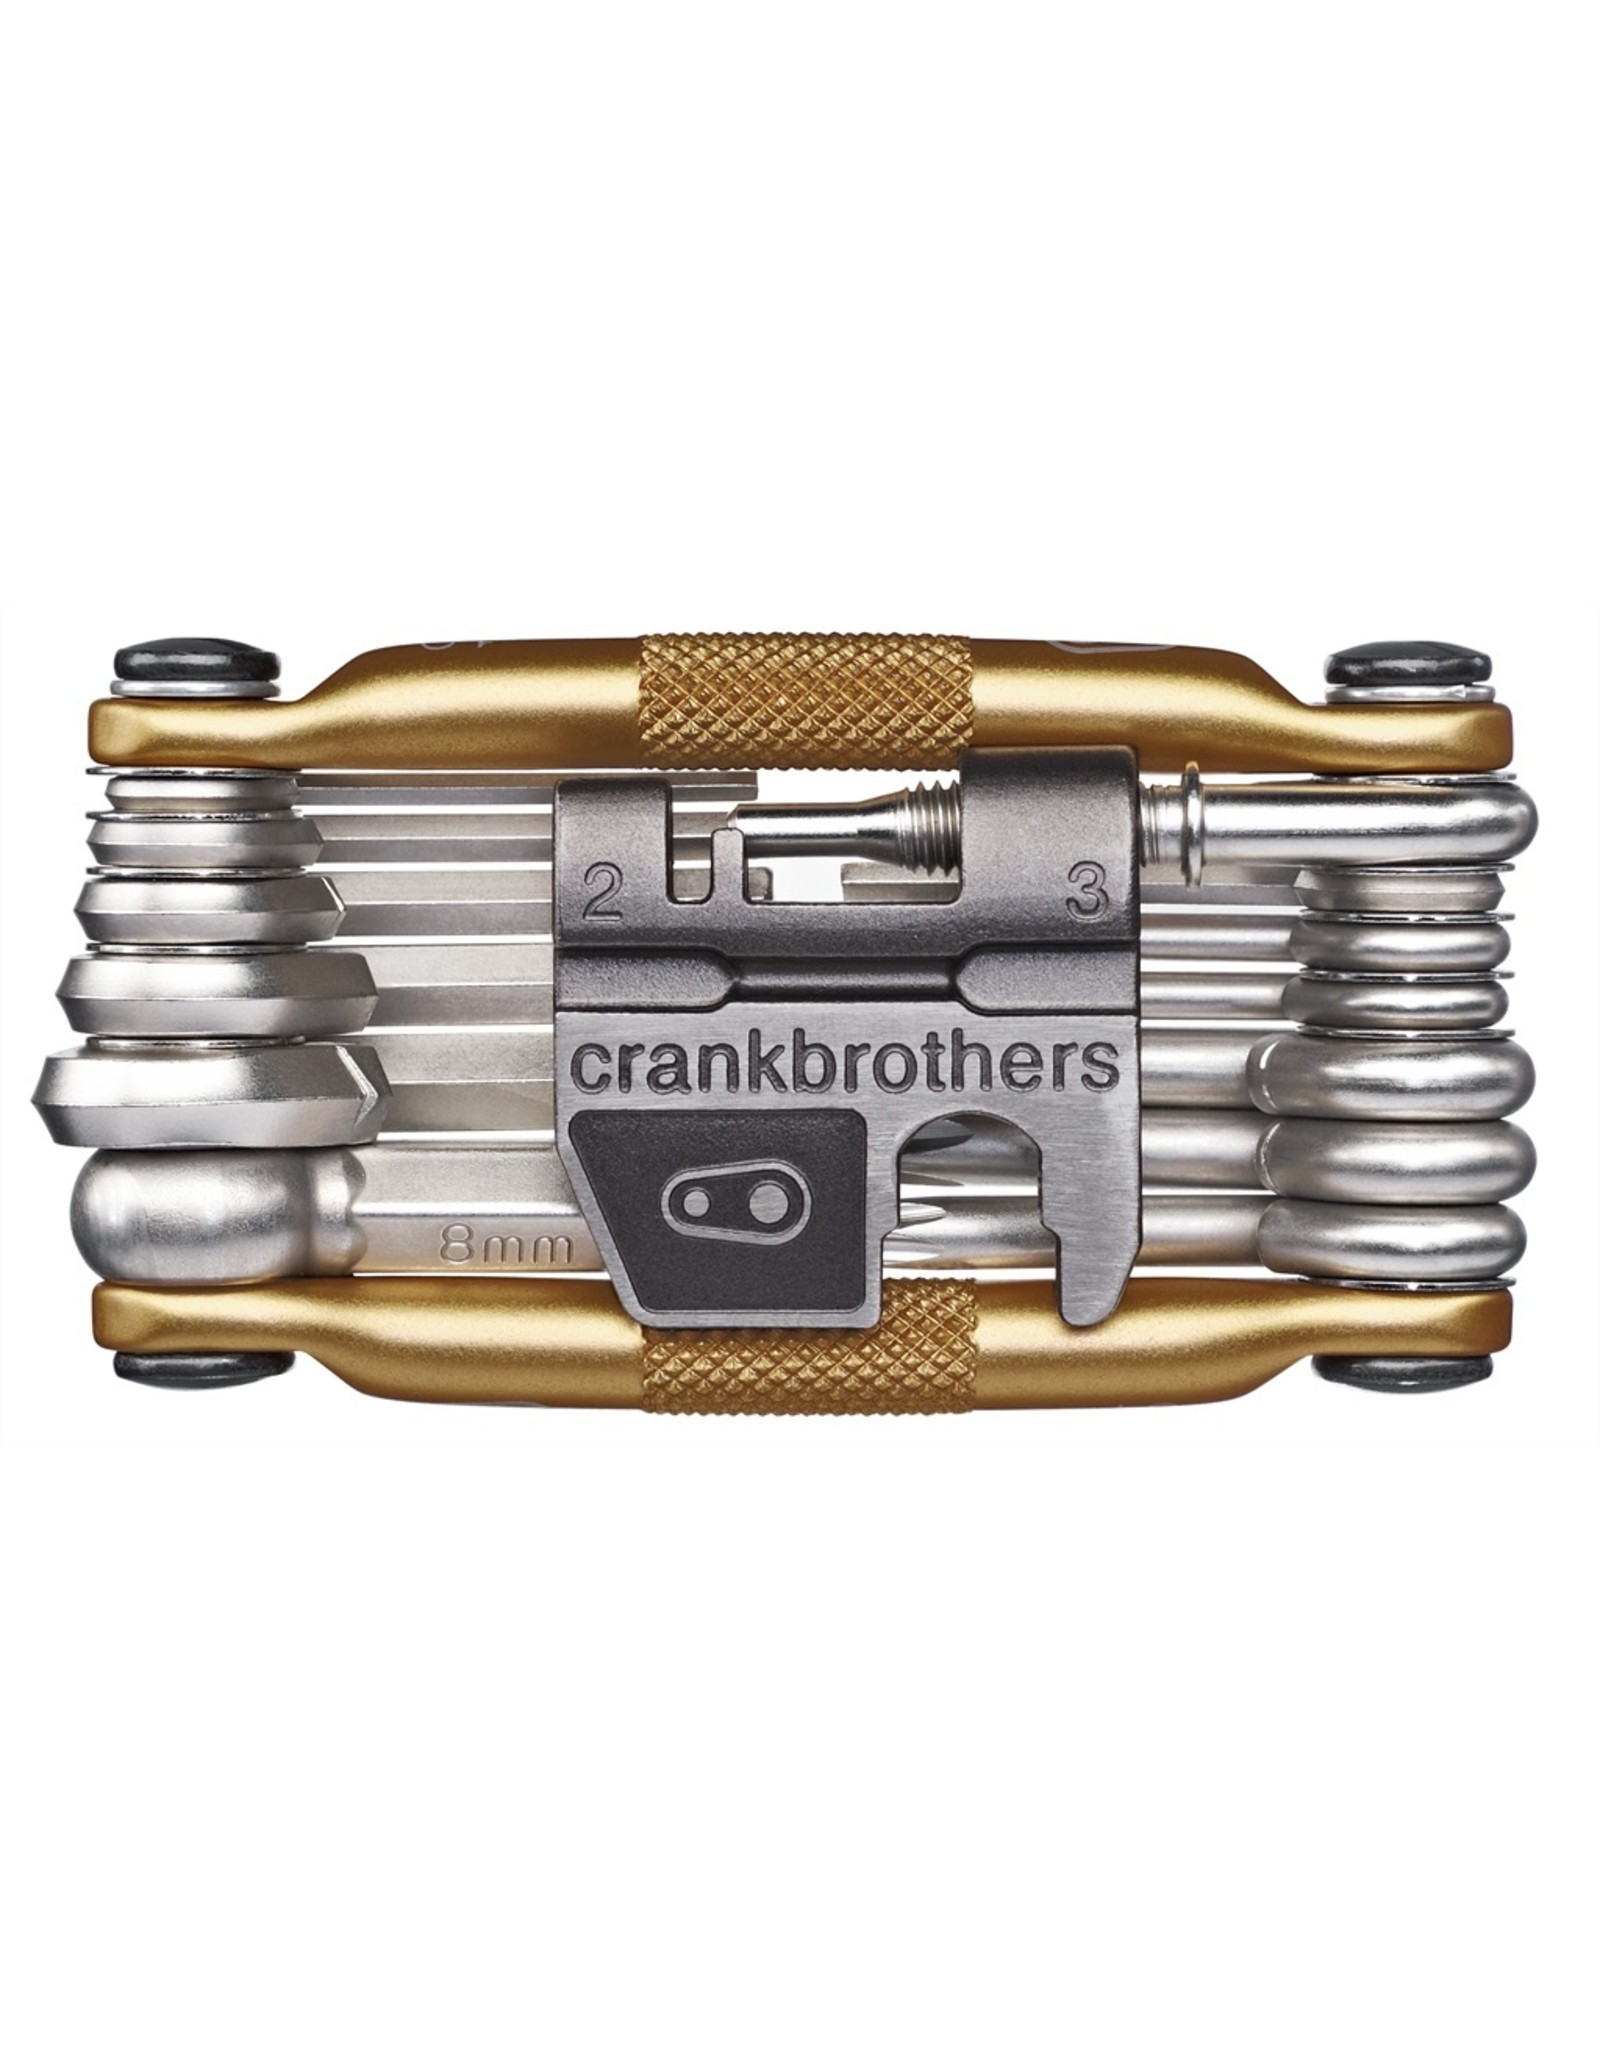 Crank Brothers m19 Tool